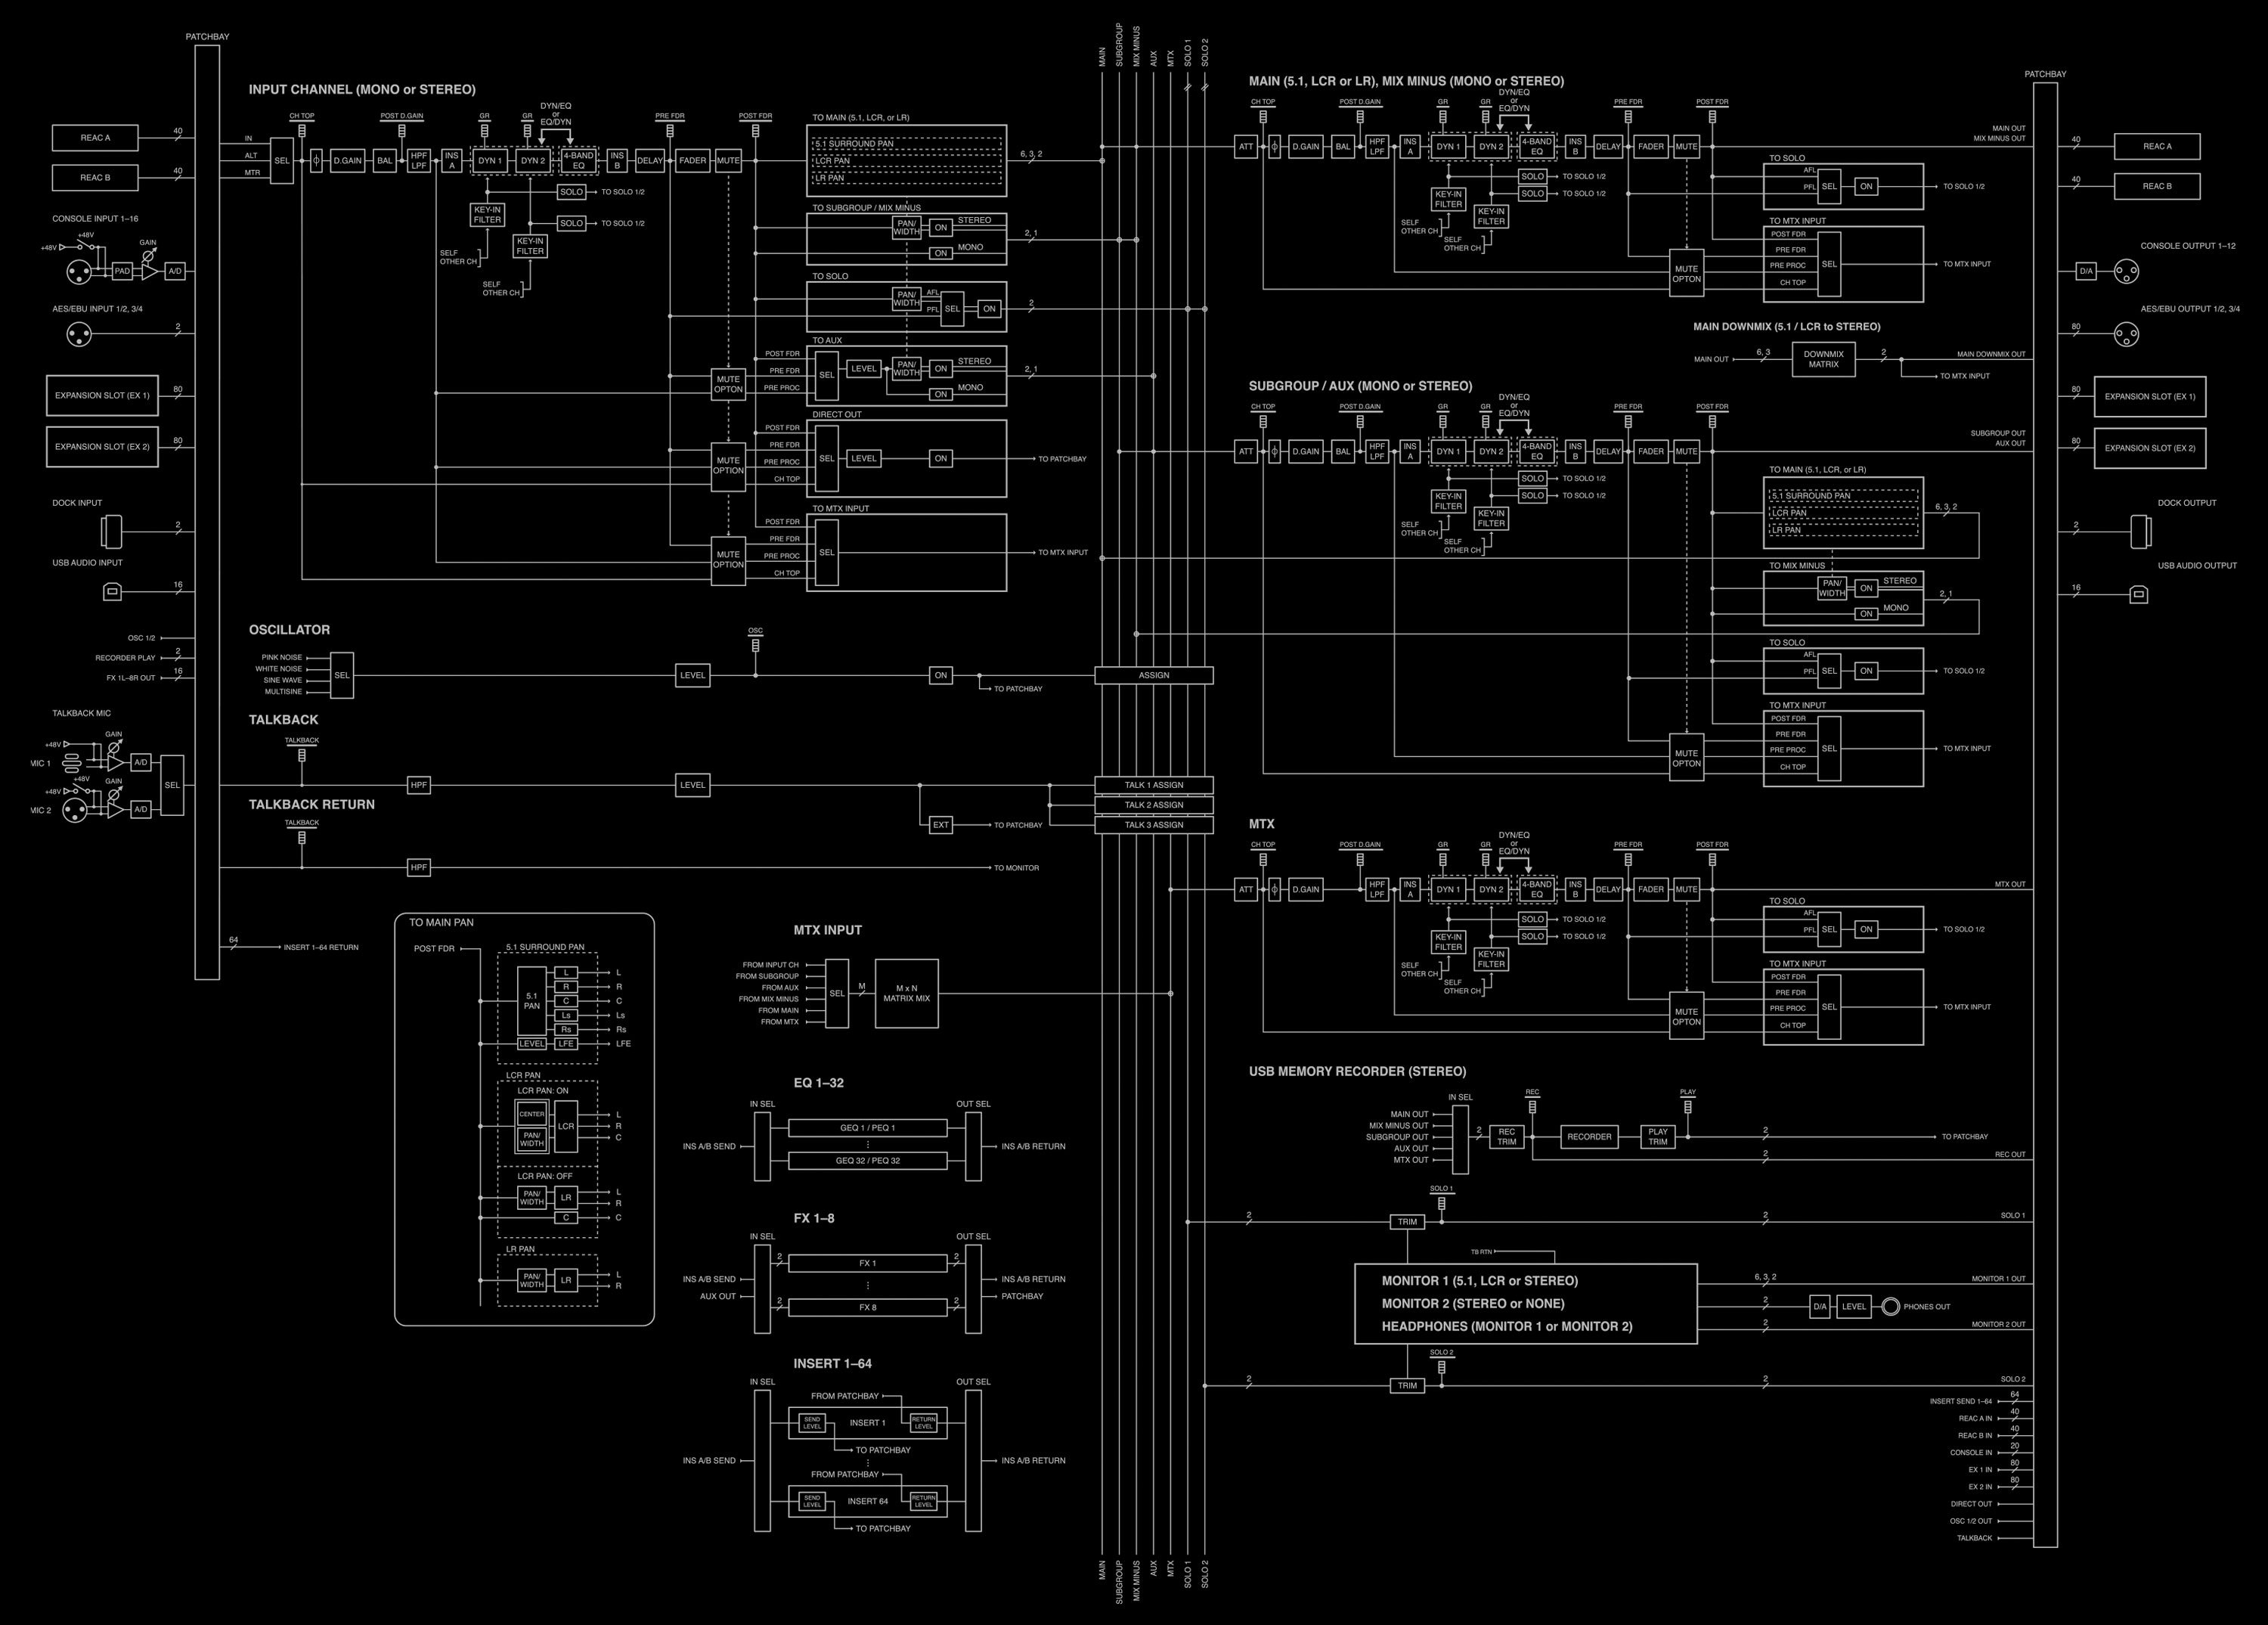 Roland M 5000 Live Mixing Console Specifications To Usb Schematic For Pinterest Together With Hub Diagram Mixer Block